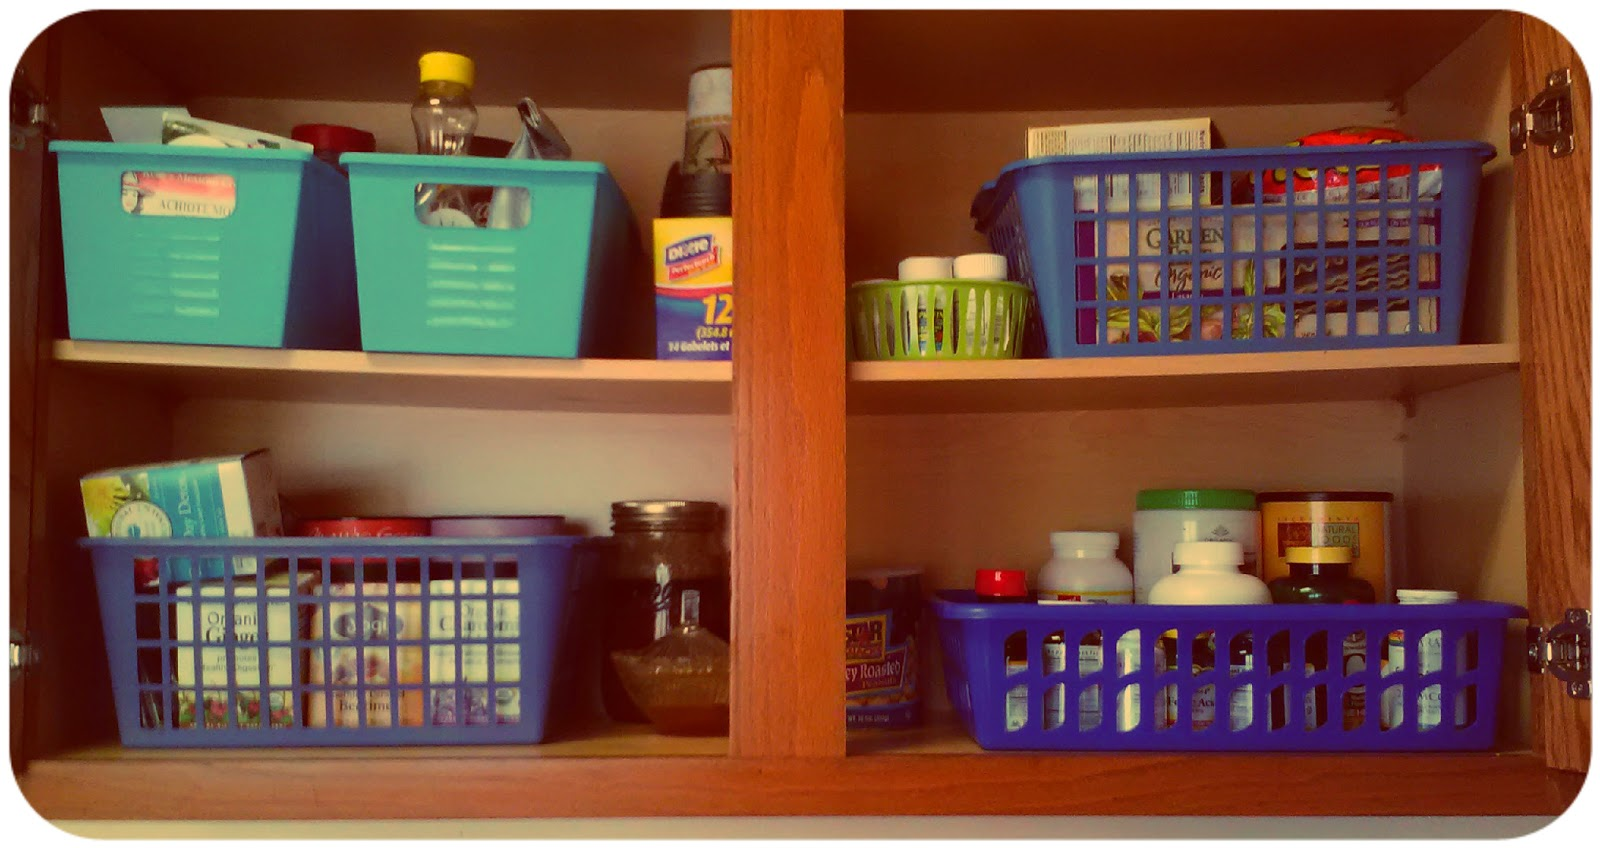 Maria's Self *: My Dollar Store Kitchen: Organization, Decoration